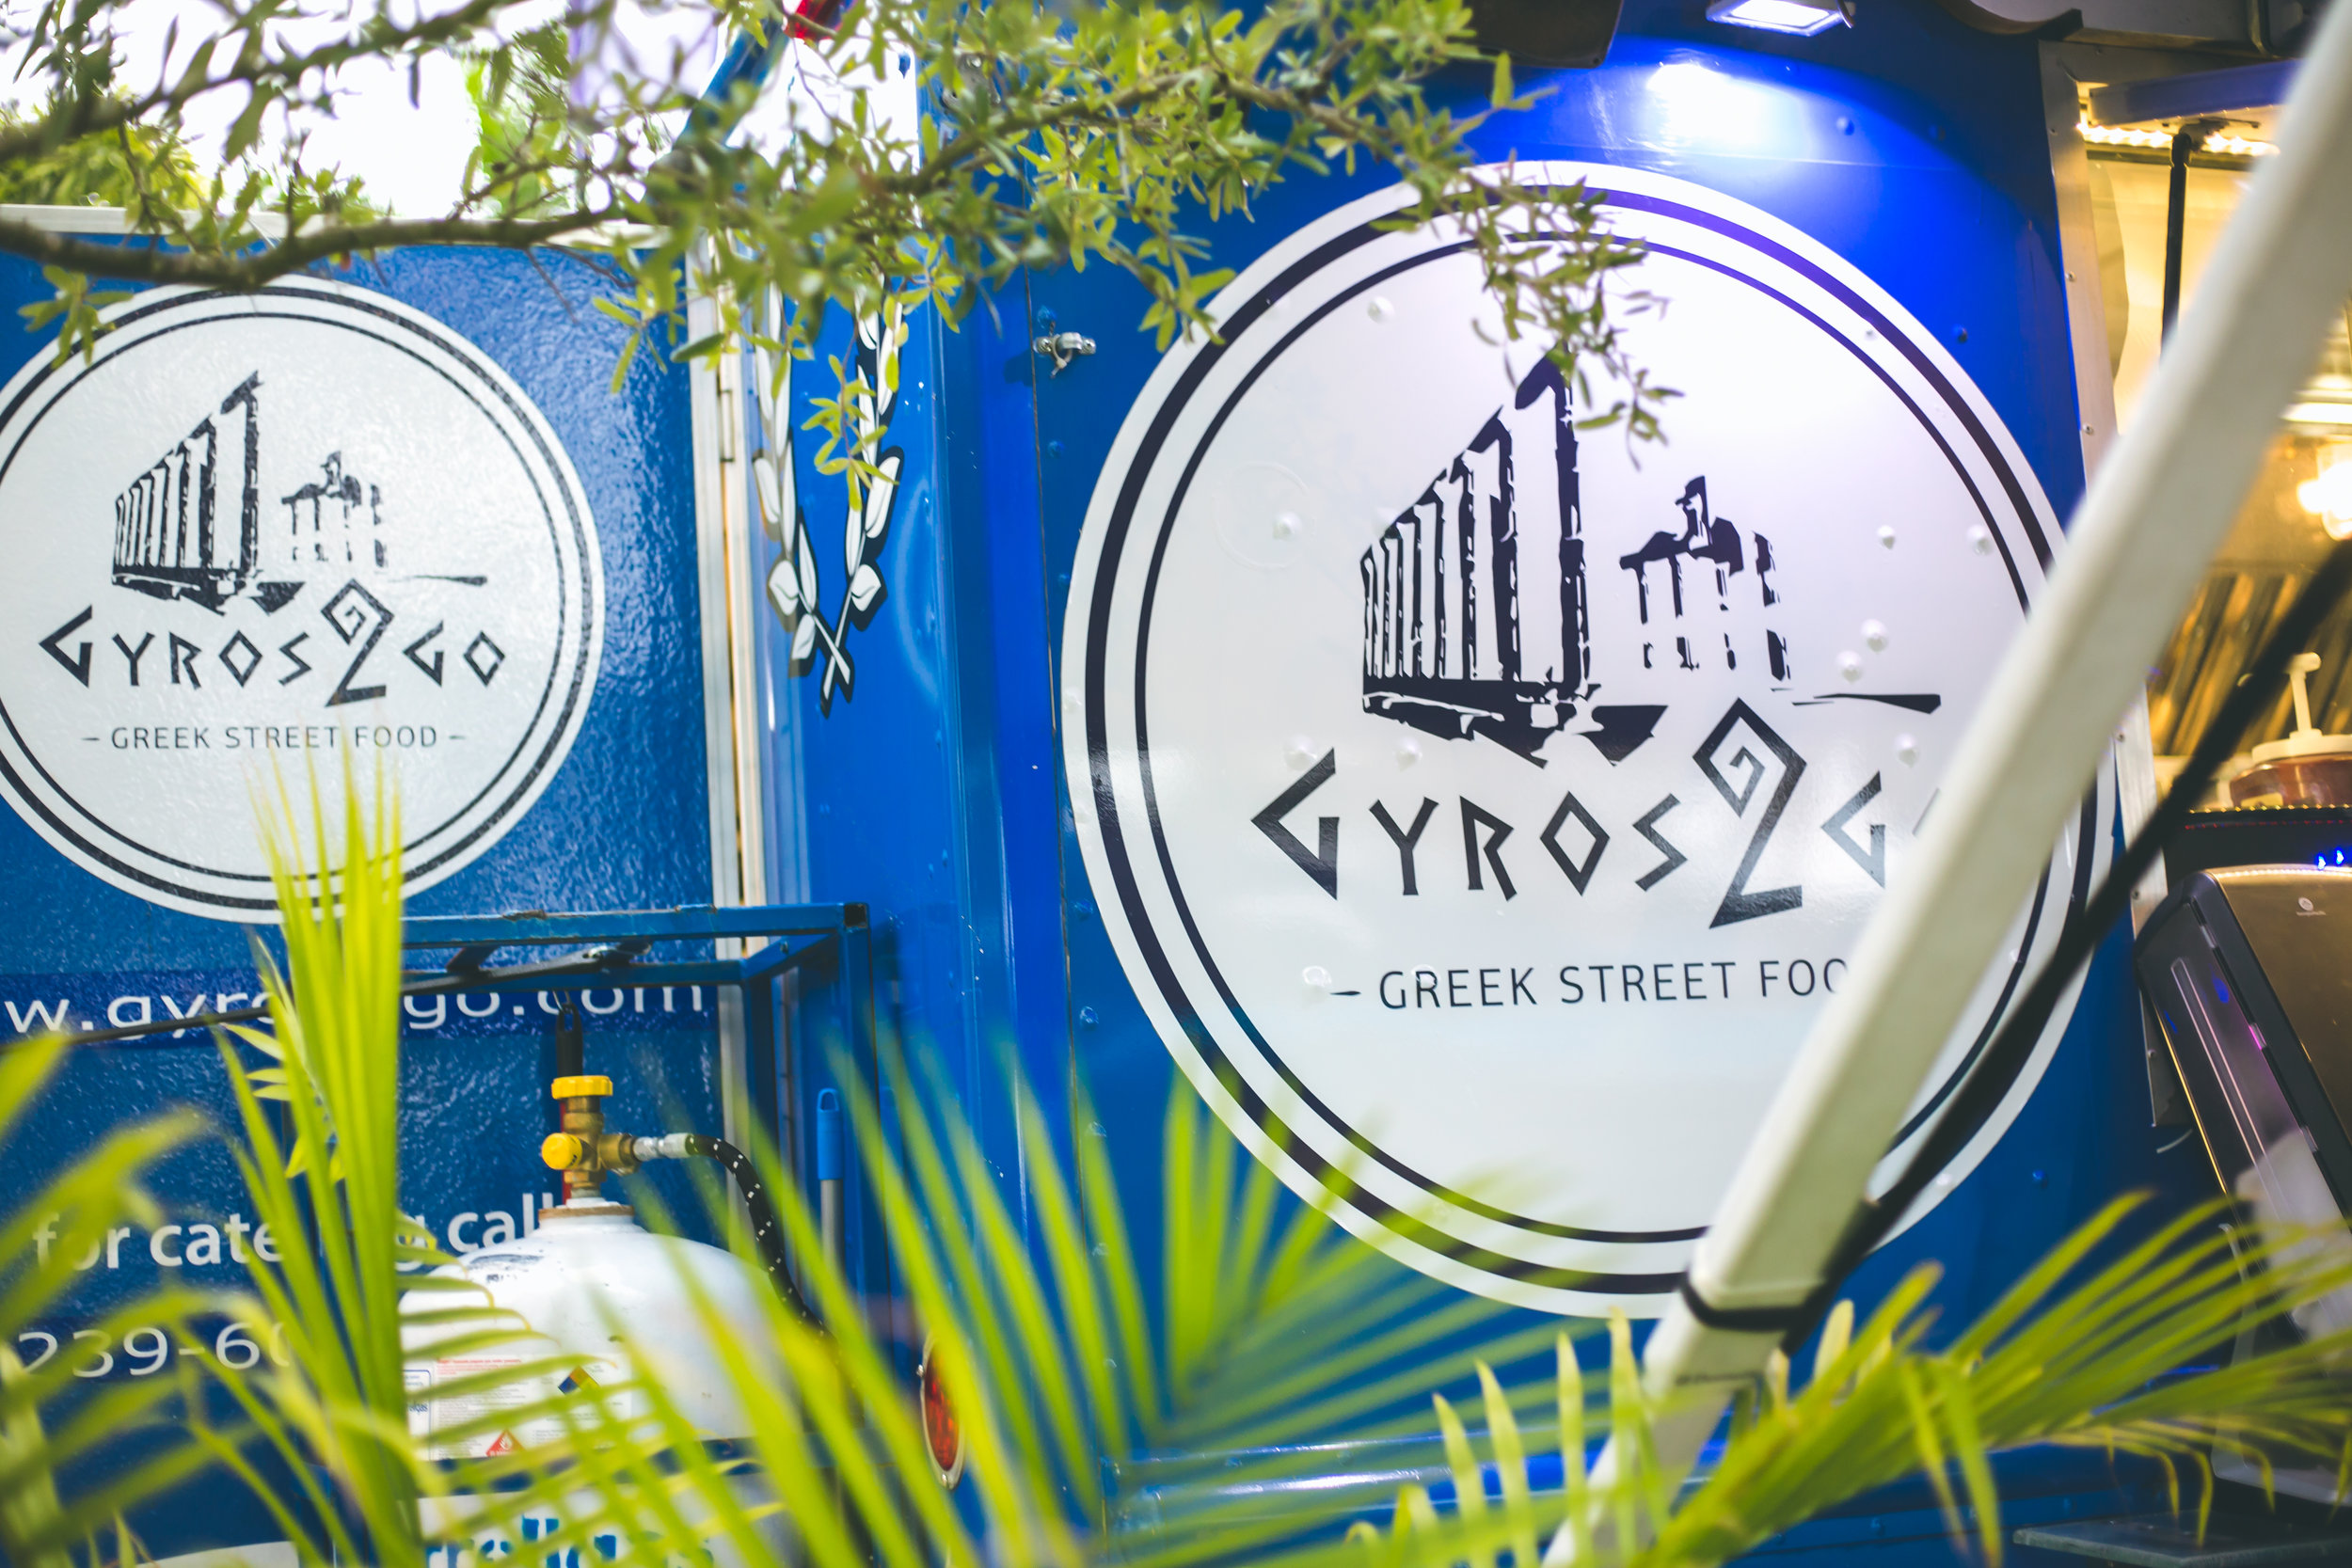 Gyros2Go B3Marketing-9748.jpg